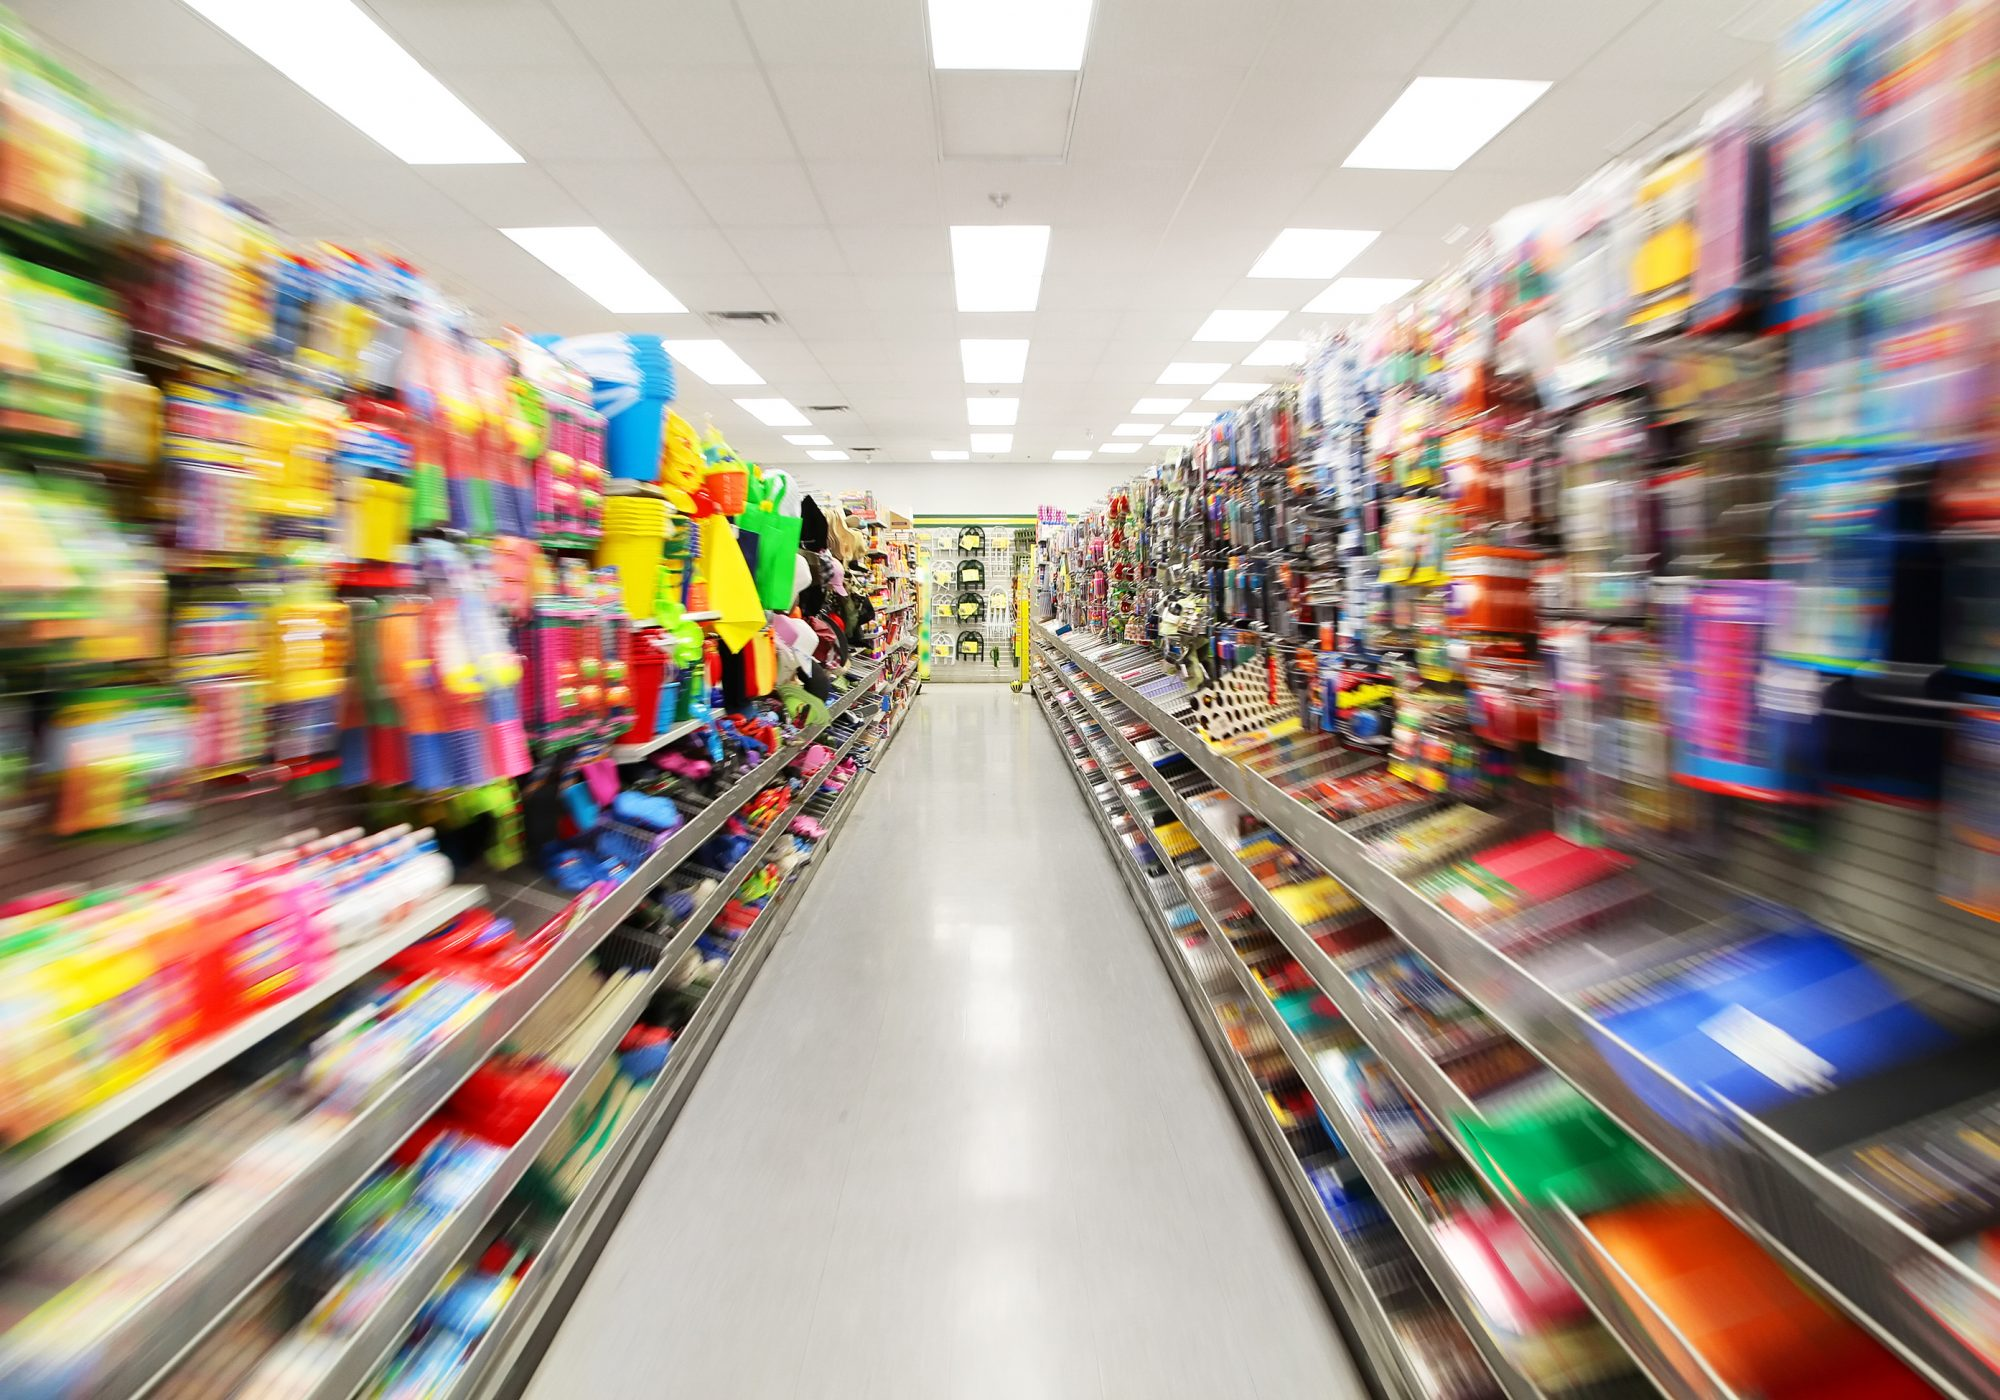 Colorful Store Shelves